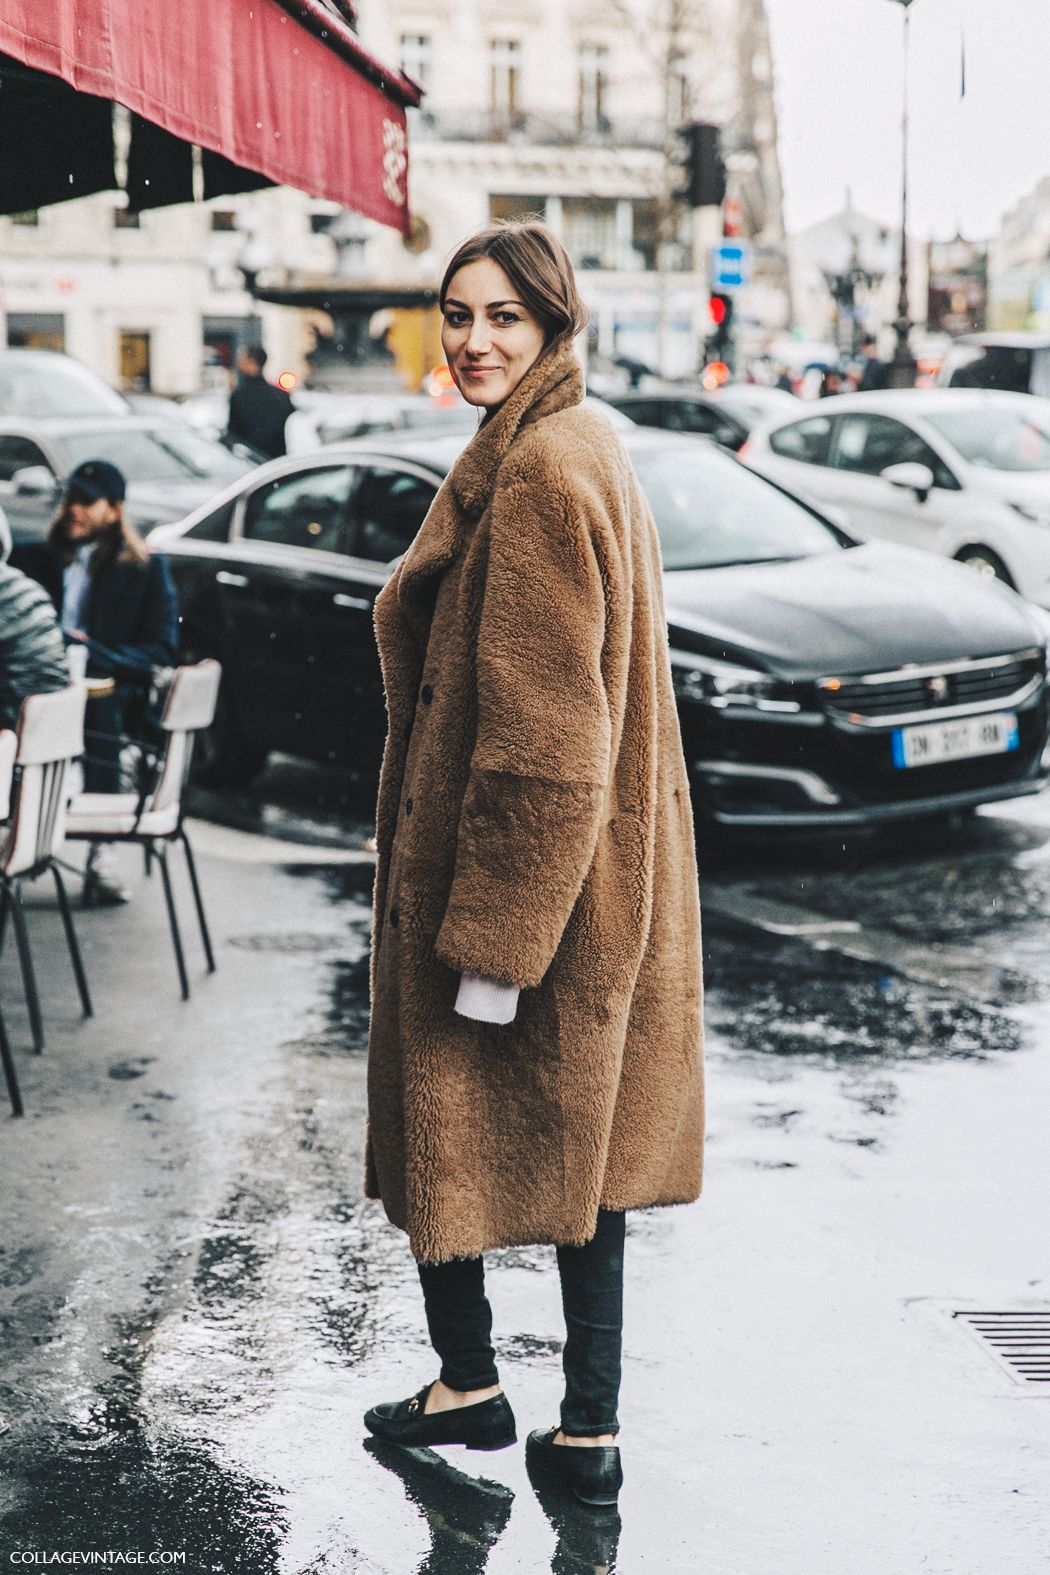 82b450bb4260b teddy style coat for winter. Giorgia Tordini by Collage Vintage